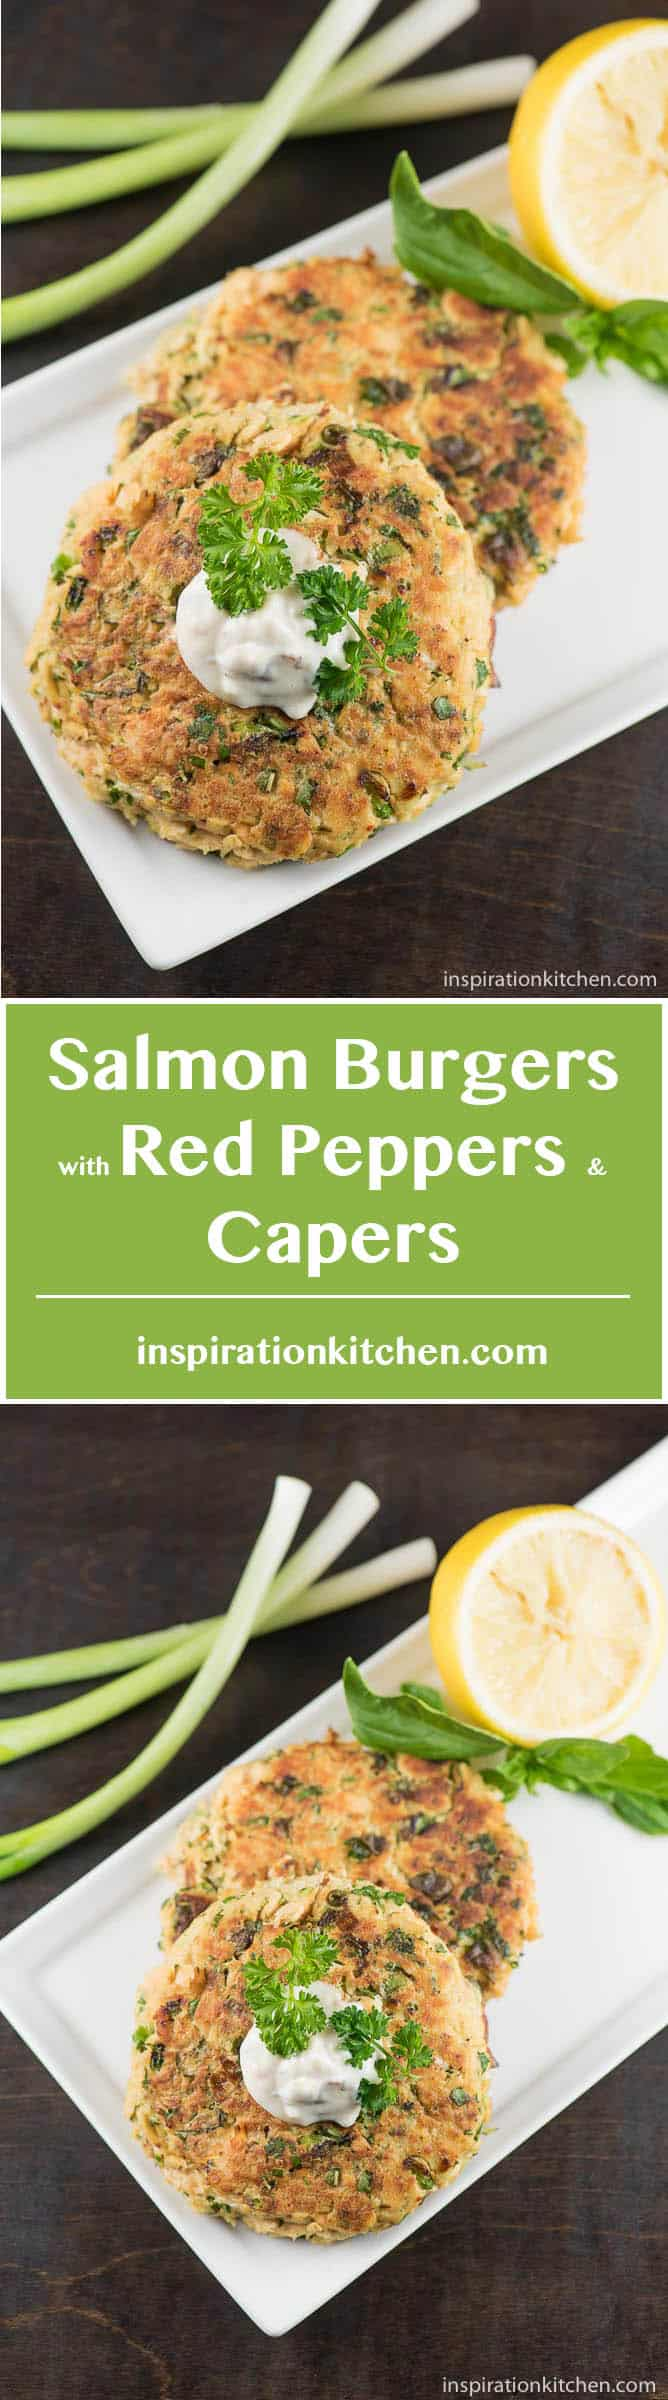 Salmon Burgers with Red Peppers and Capers - inspirationkitchen.com